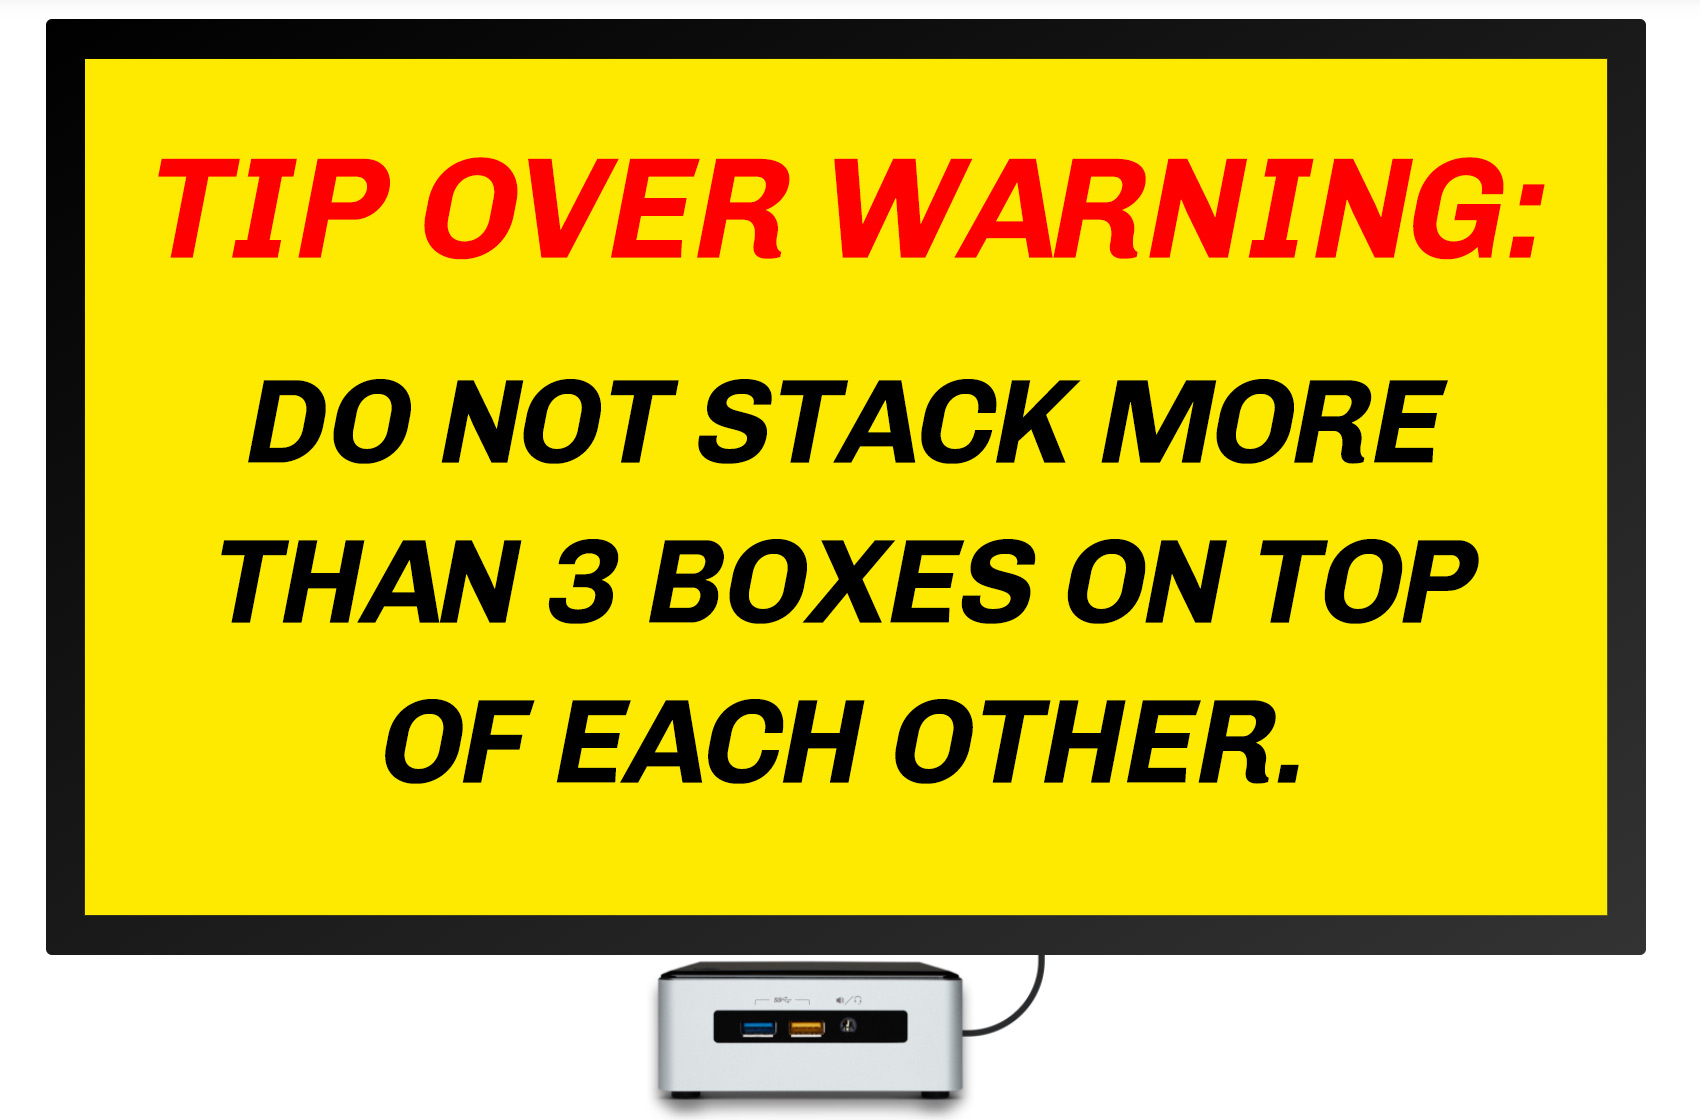 tip over warning digital signage